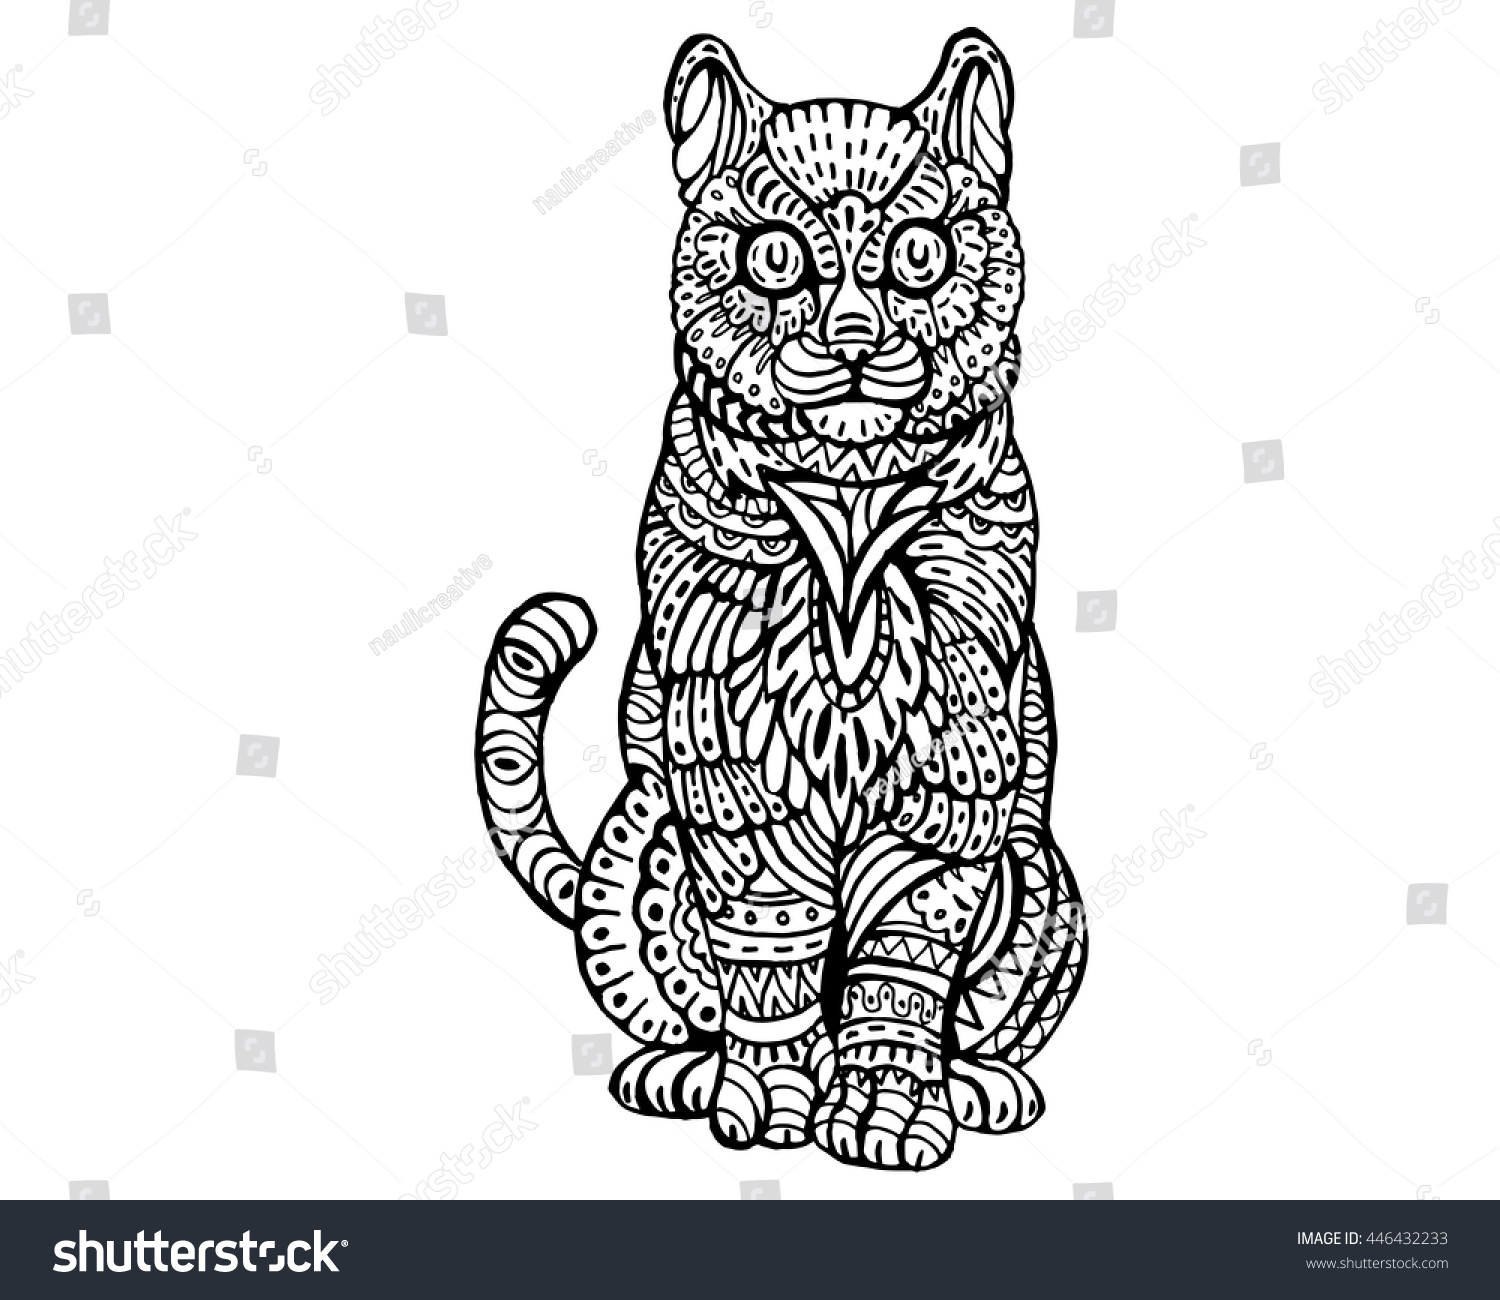 Stock vector ethnic animal doodle detail pattern killer whale - Ethnic Animal Doodle Detail Pattern Cute Cat Zentangle Illustration